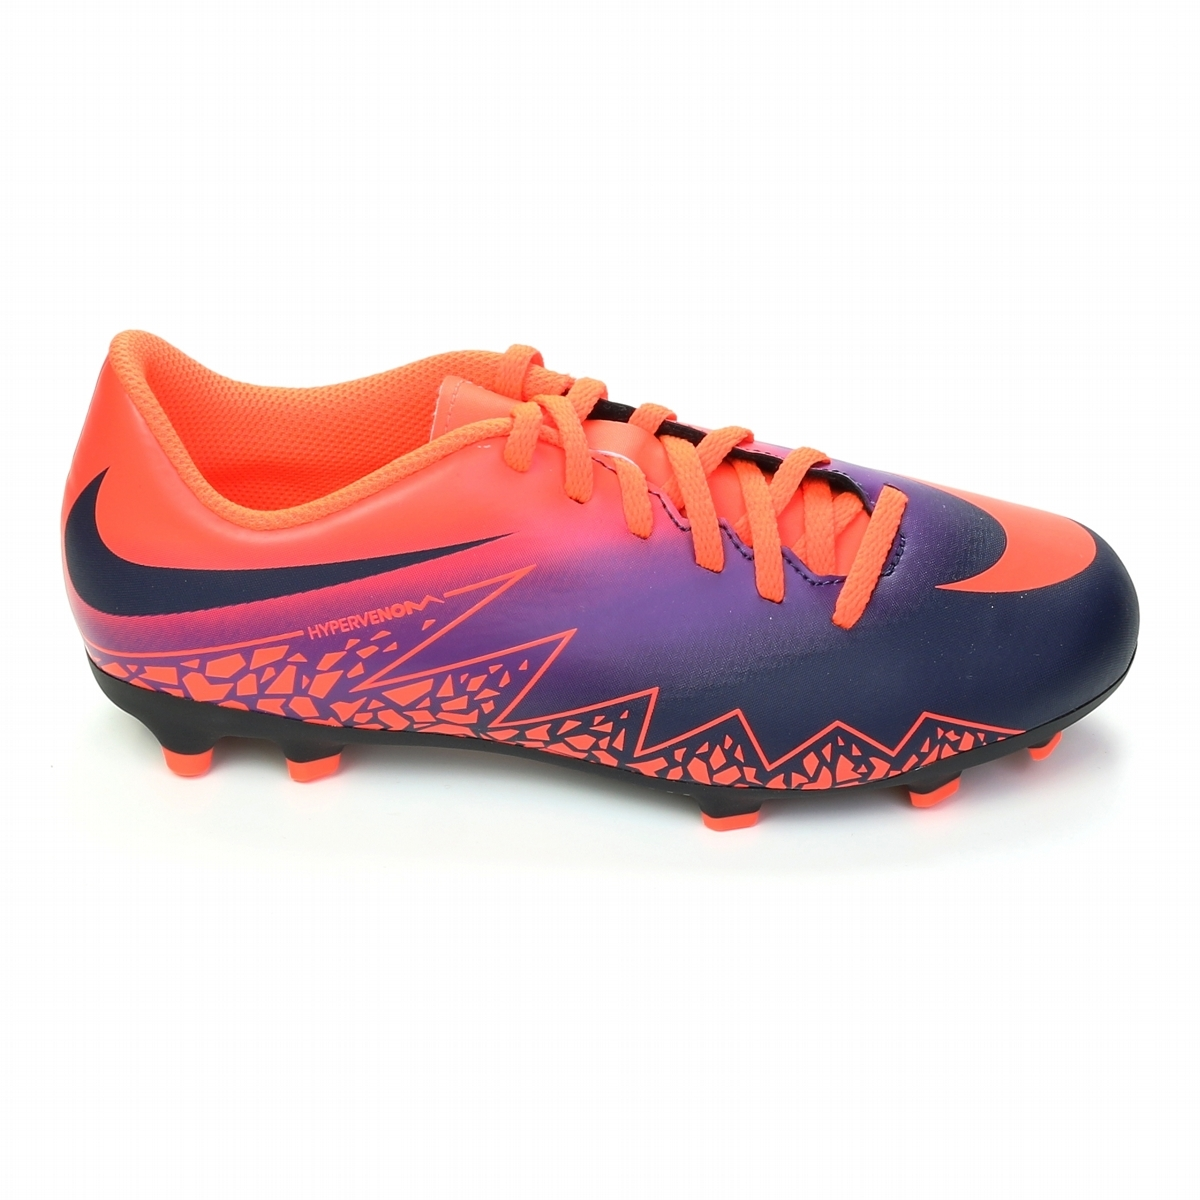 innovative design 4a1ff 7ffa7 Nike Hypervenom Phade II FG Youth Soccer Cleats (Total  Crimson/Obsidian/Vivid Purple)